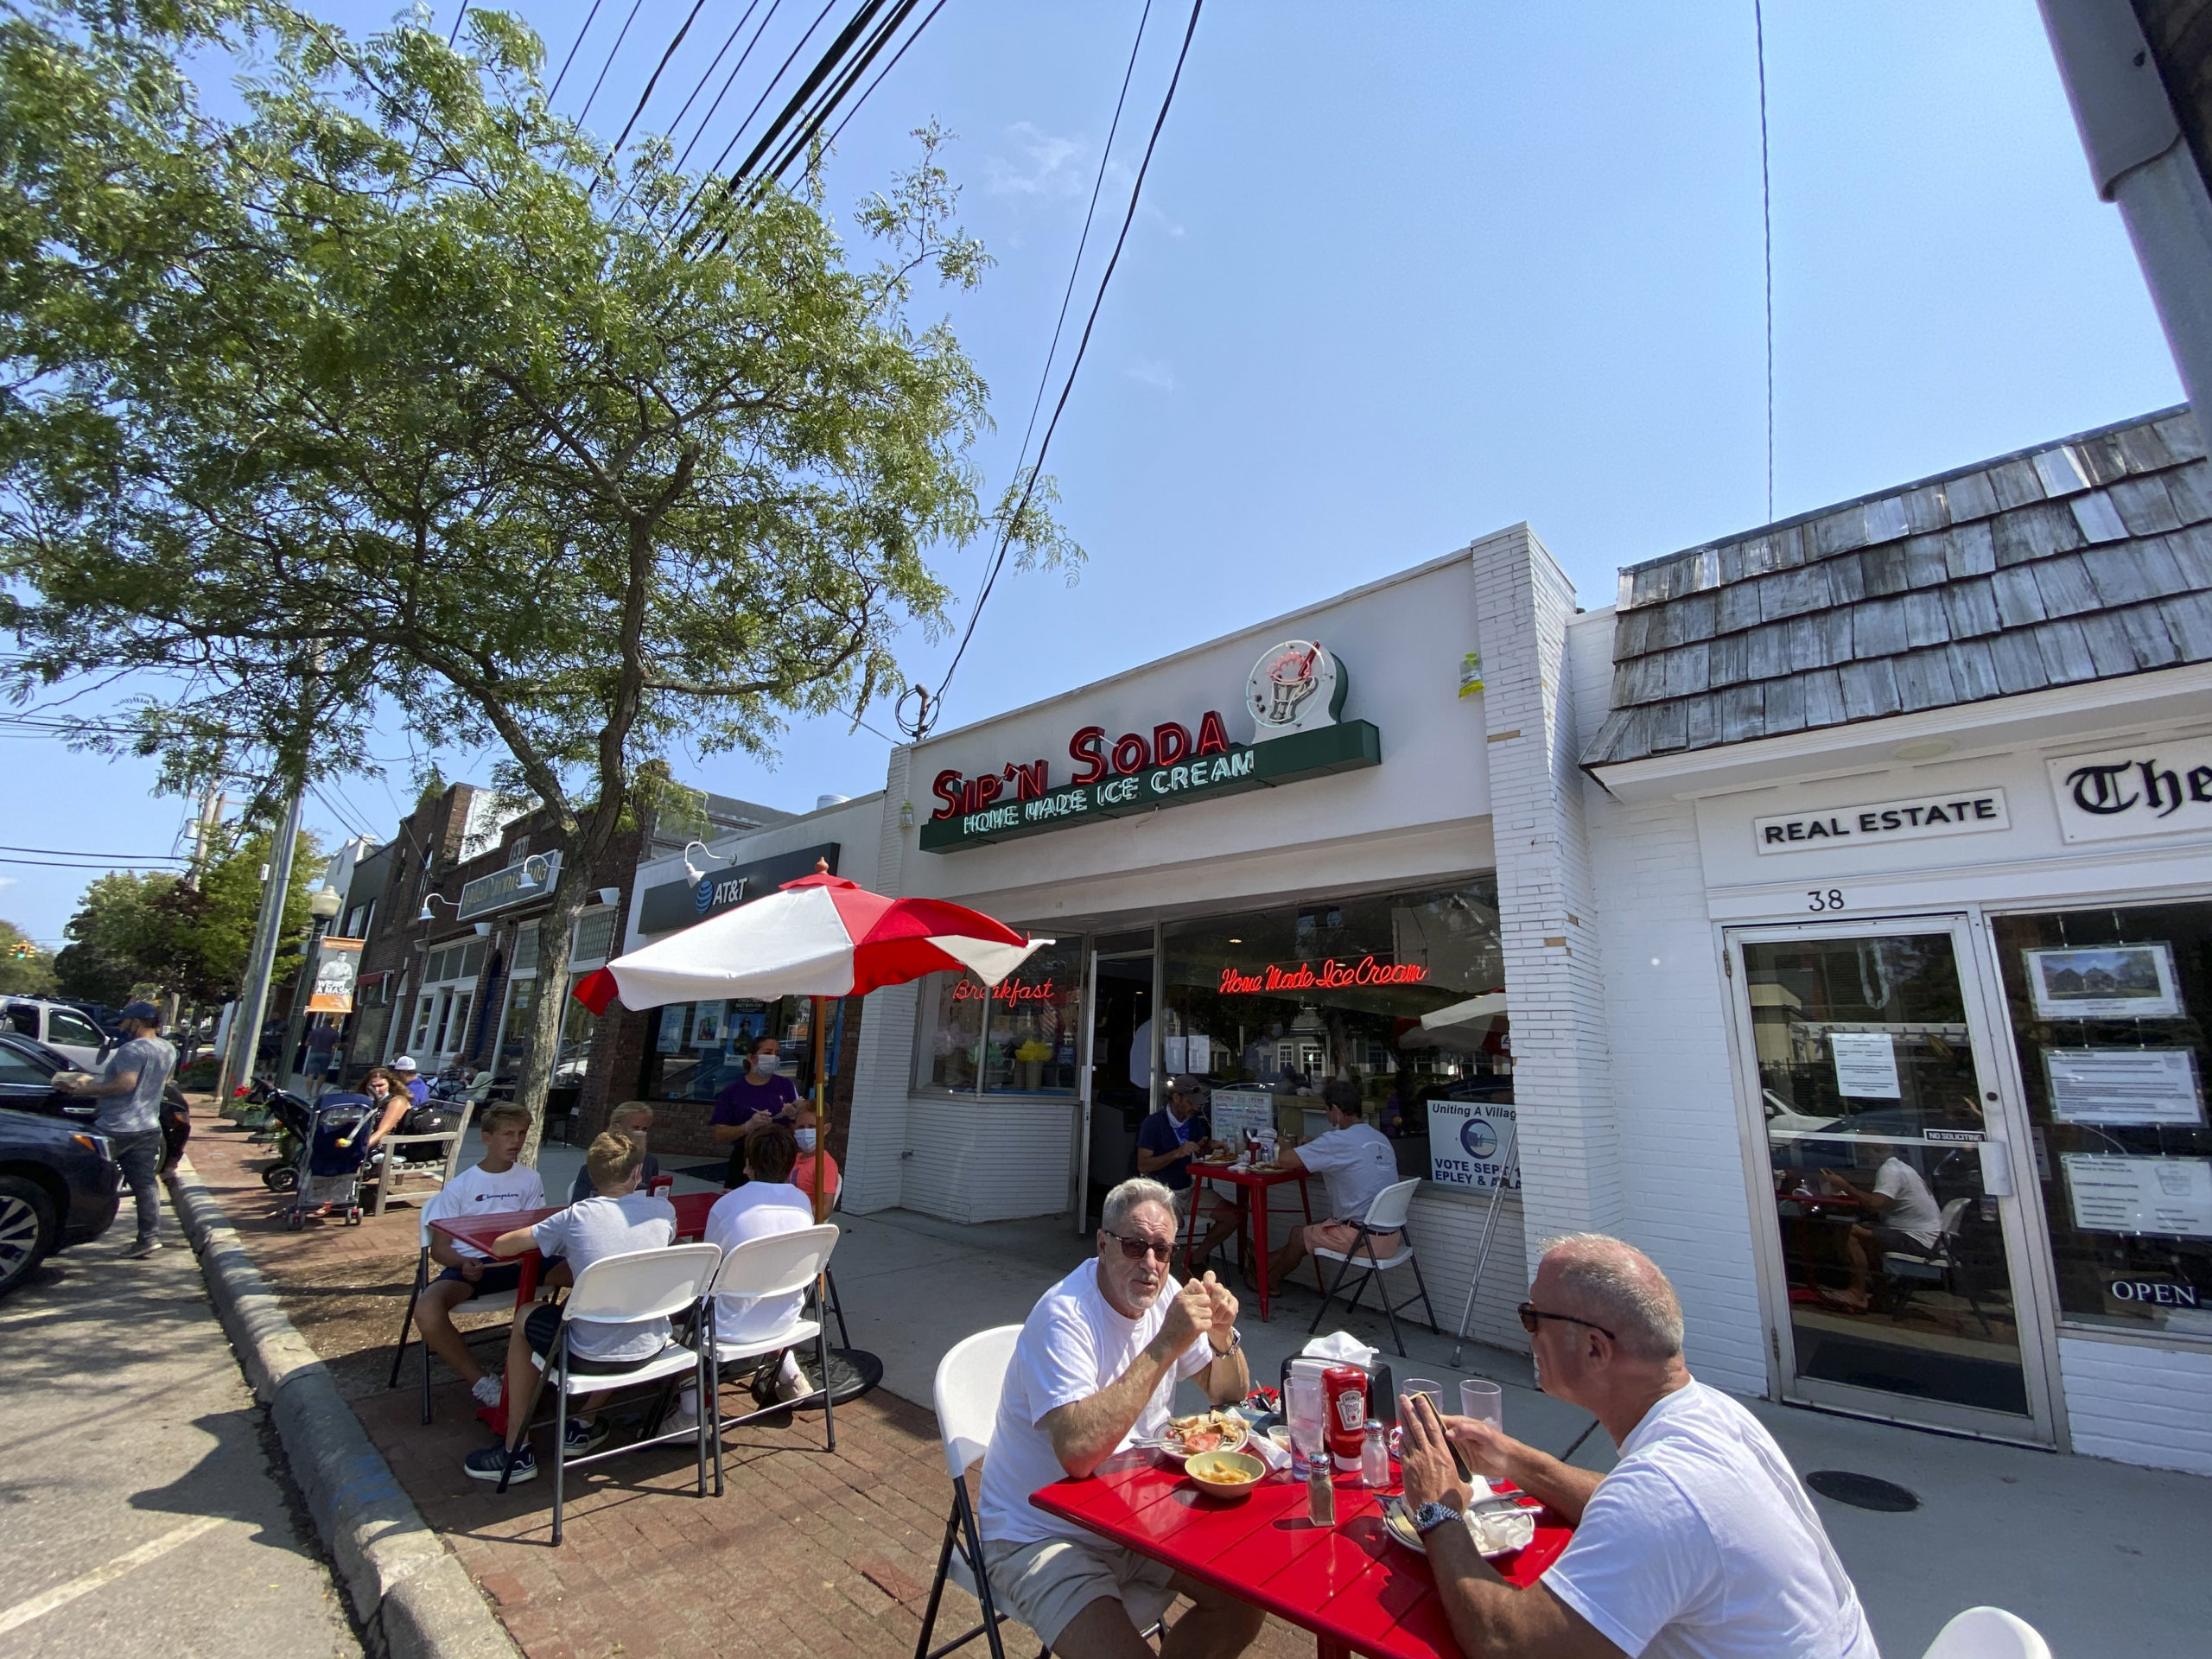 Southampton Village staple Sip N' Soda added tables for outdoor dining to accommodate guests. DANA SHAW